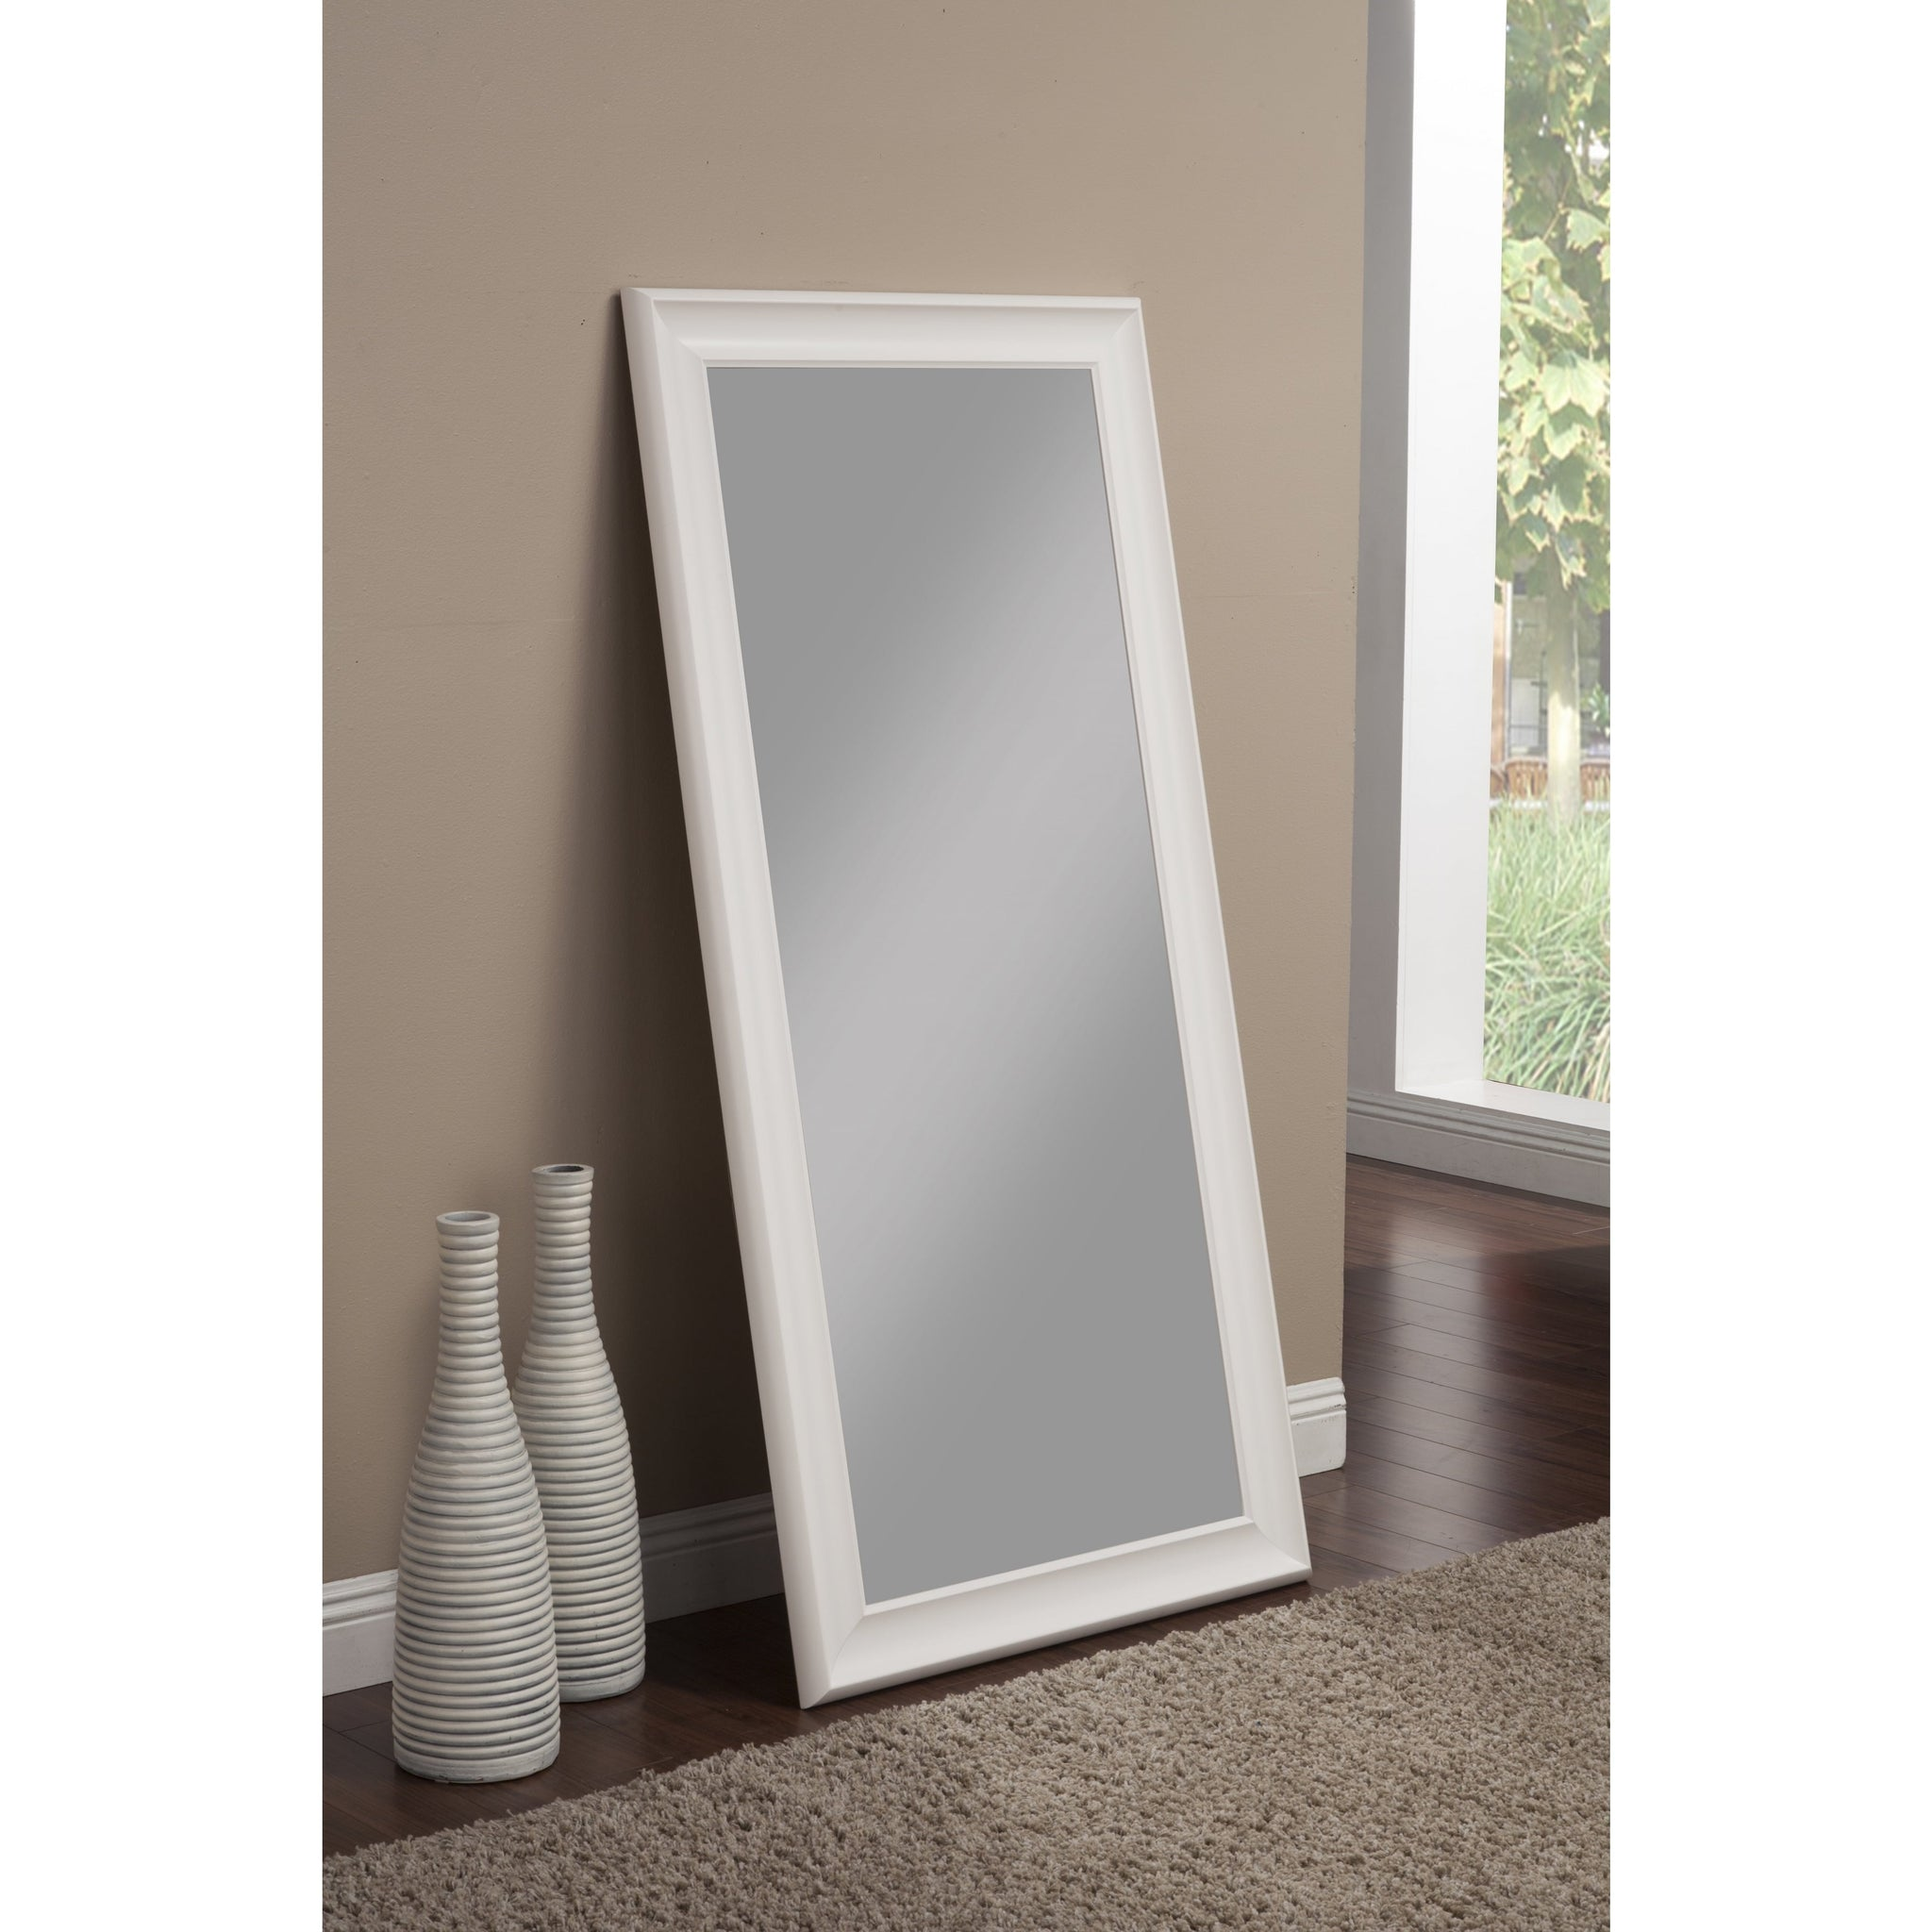 Frost White Full-Length Leaner Mirror